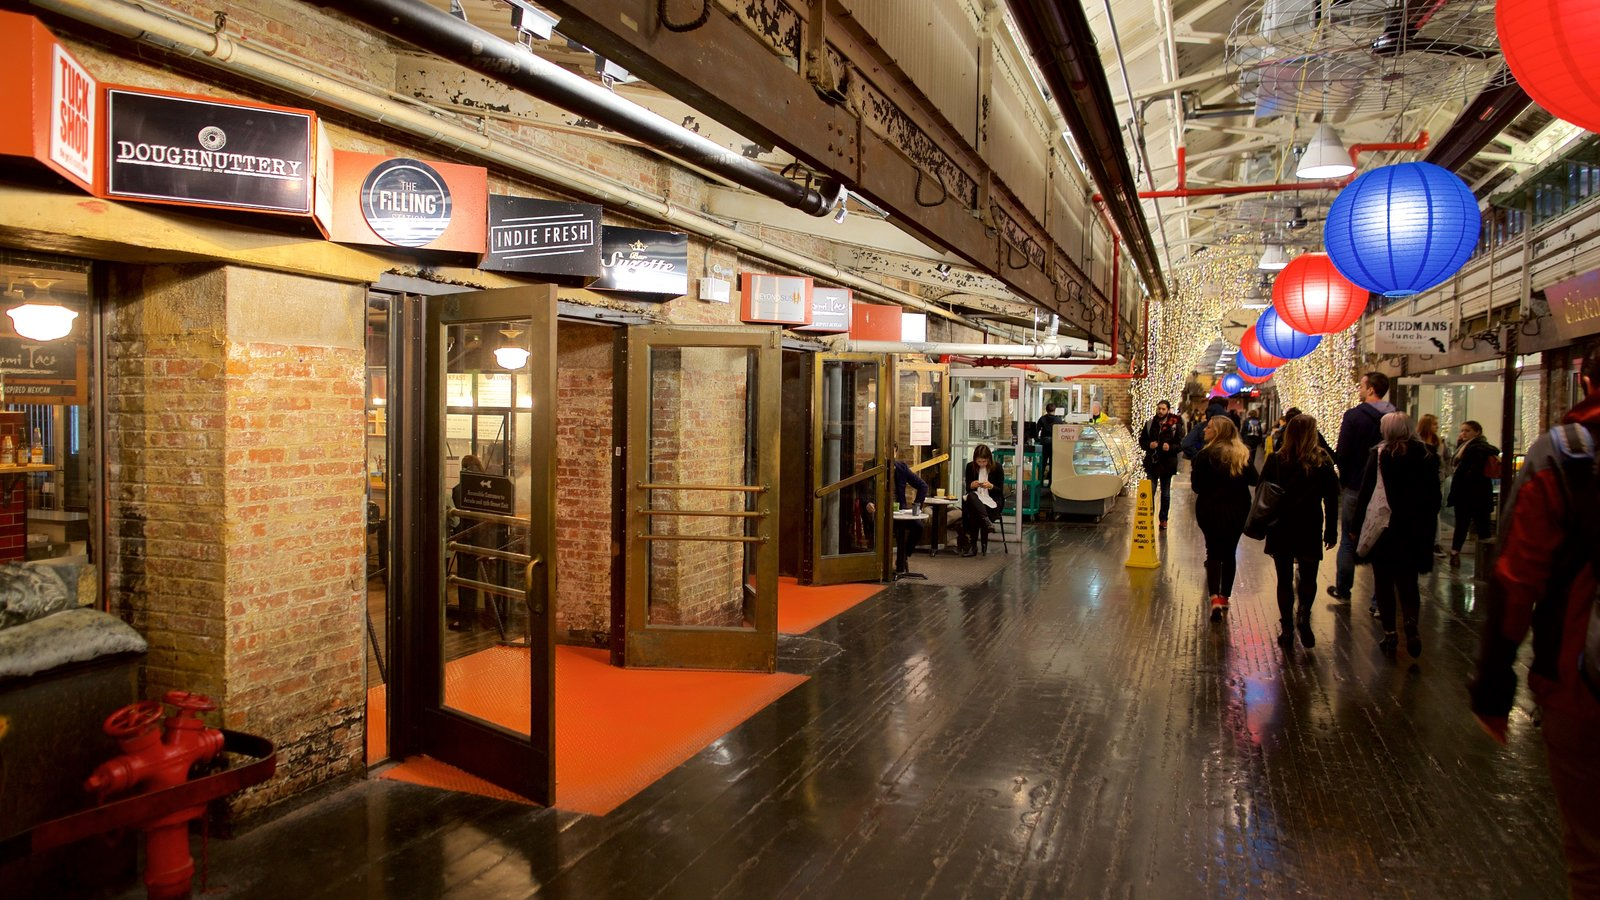 Chelsea Market featuring interior views as well as a small group of people